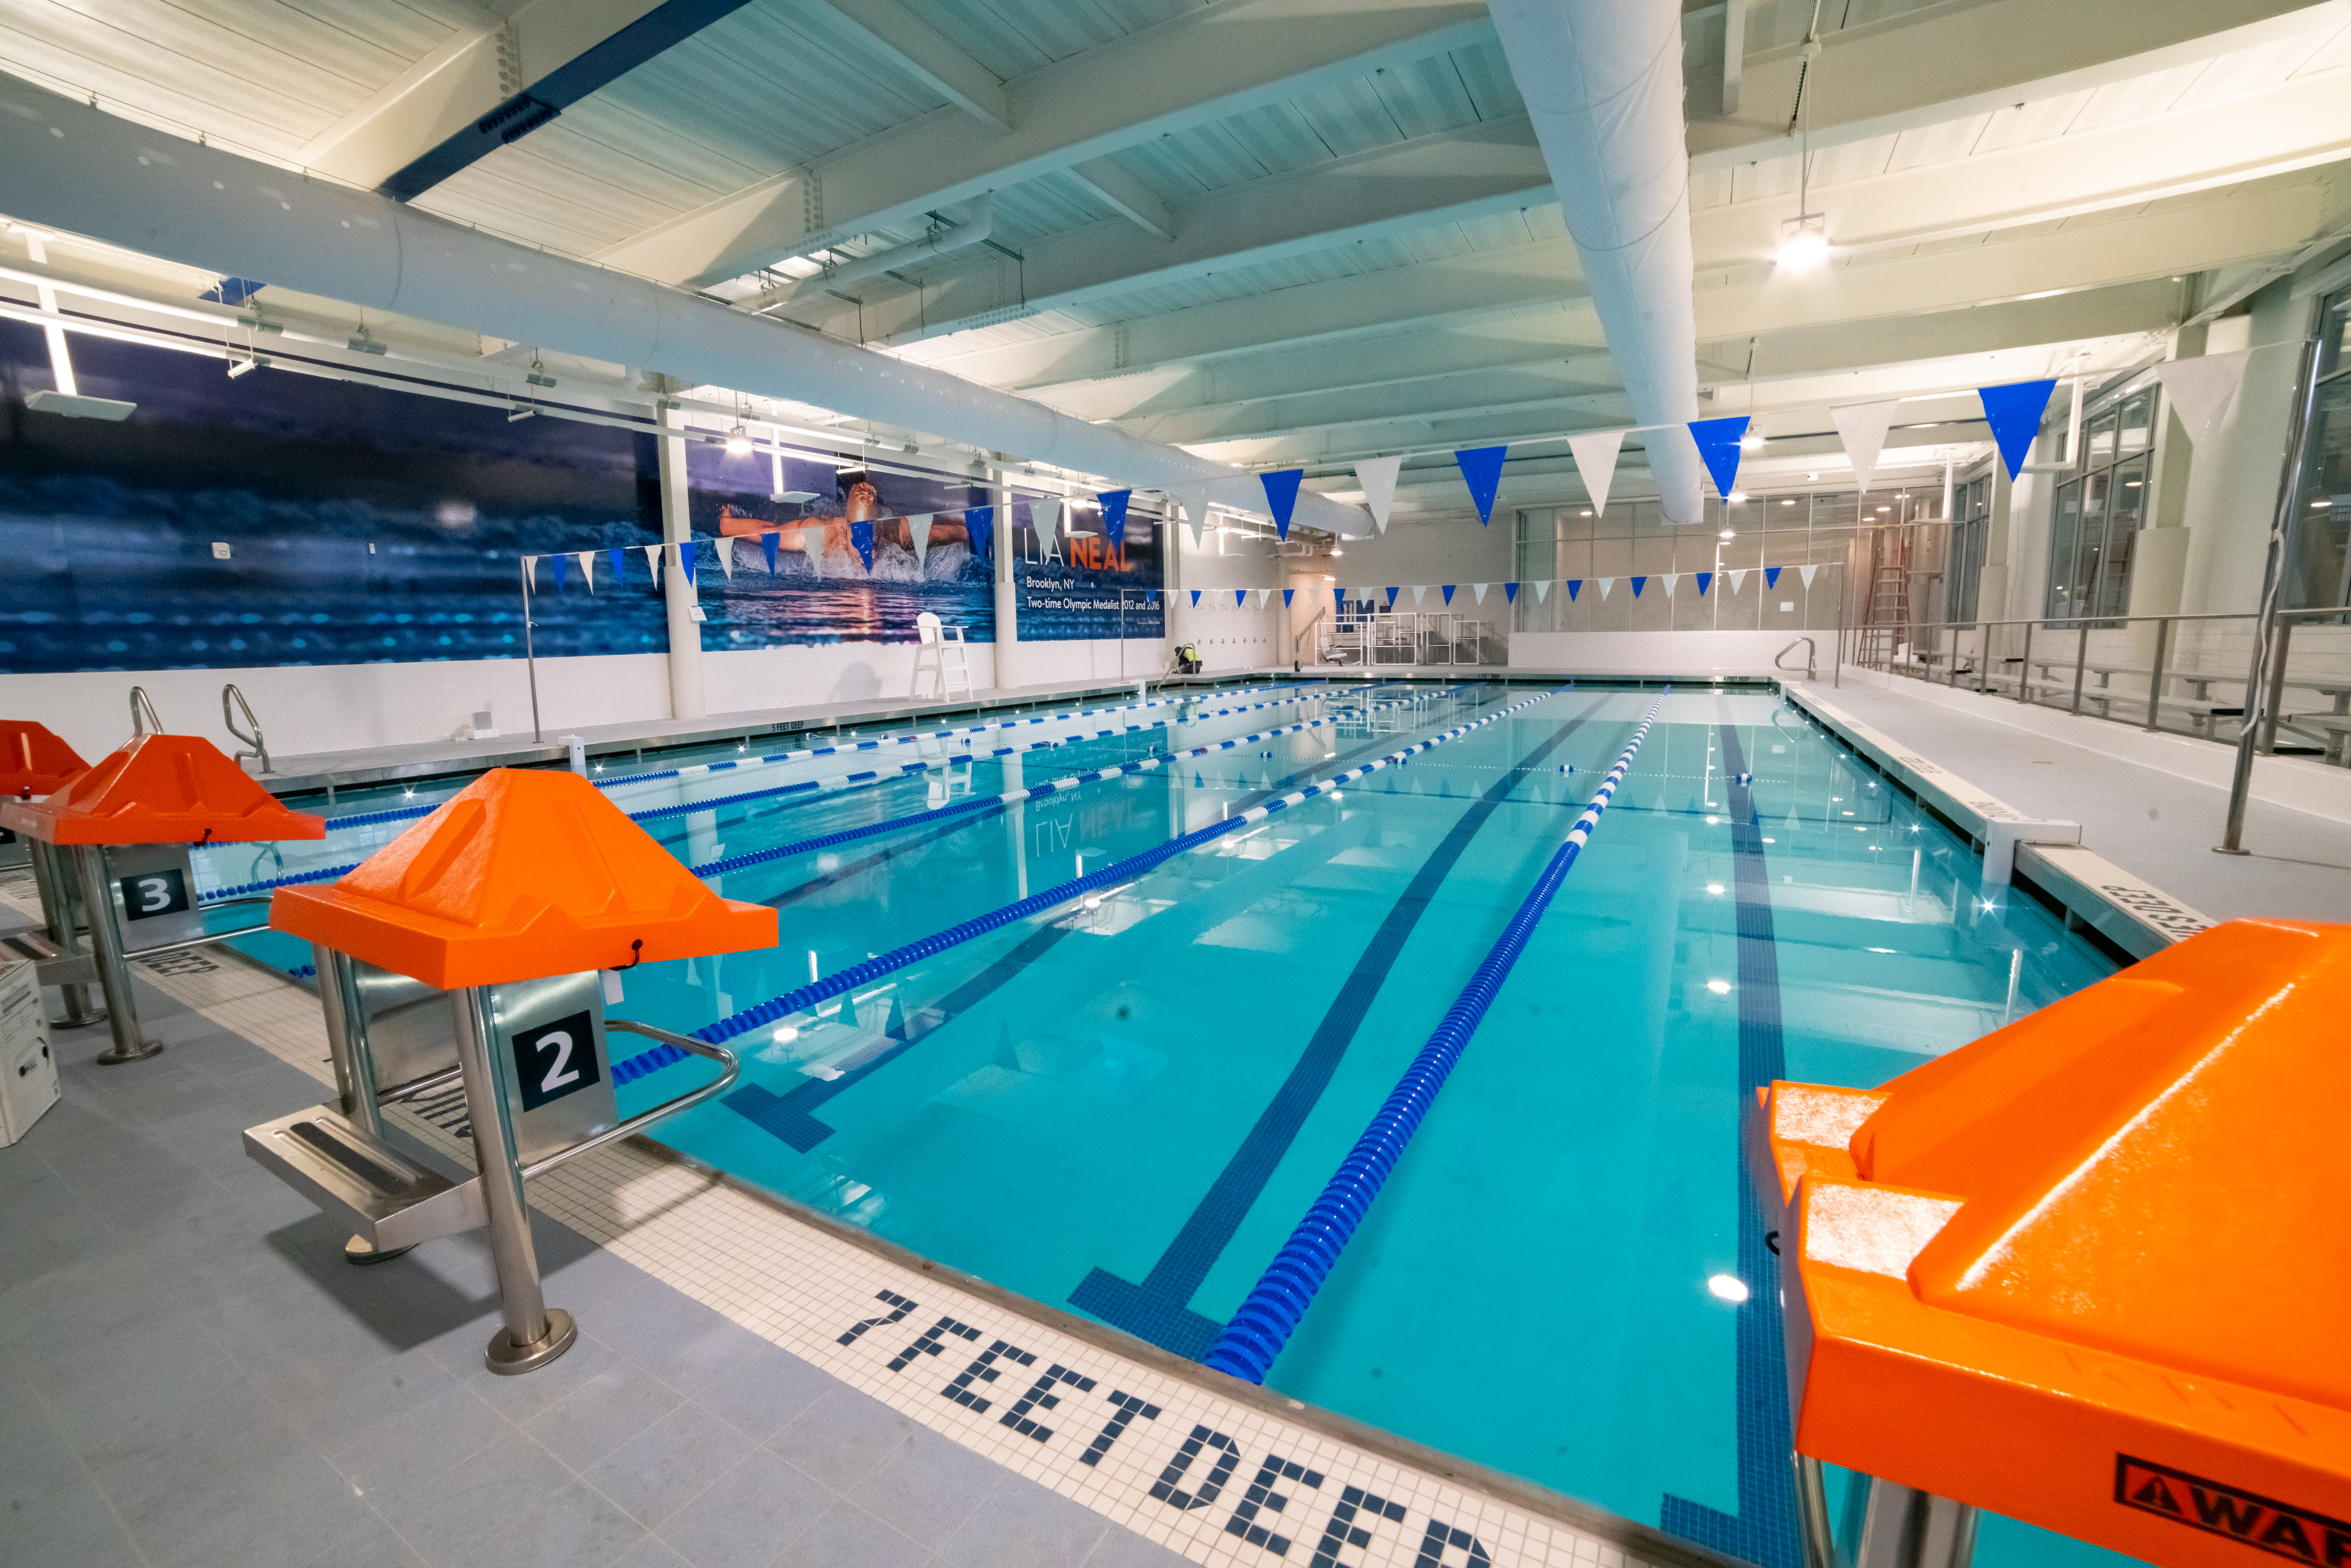 The swimming pool of the CAREY GABAY RECREATION CENTER in Crown Height's former Bedford Union Armory, part of a controversial residential development.